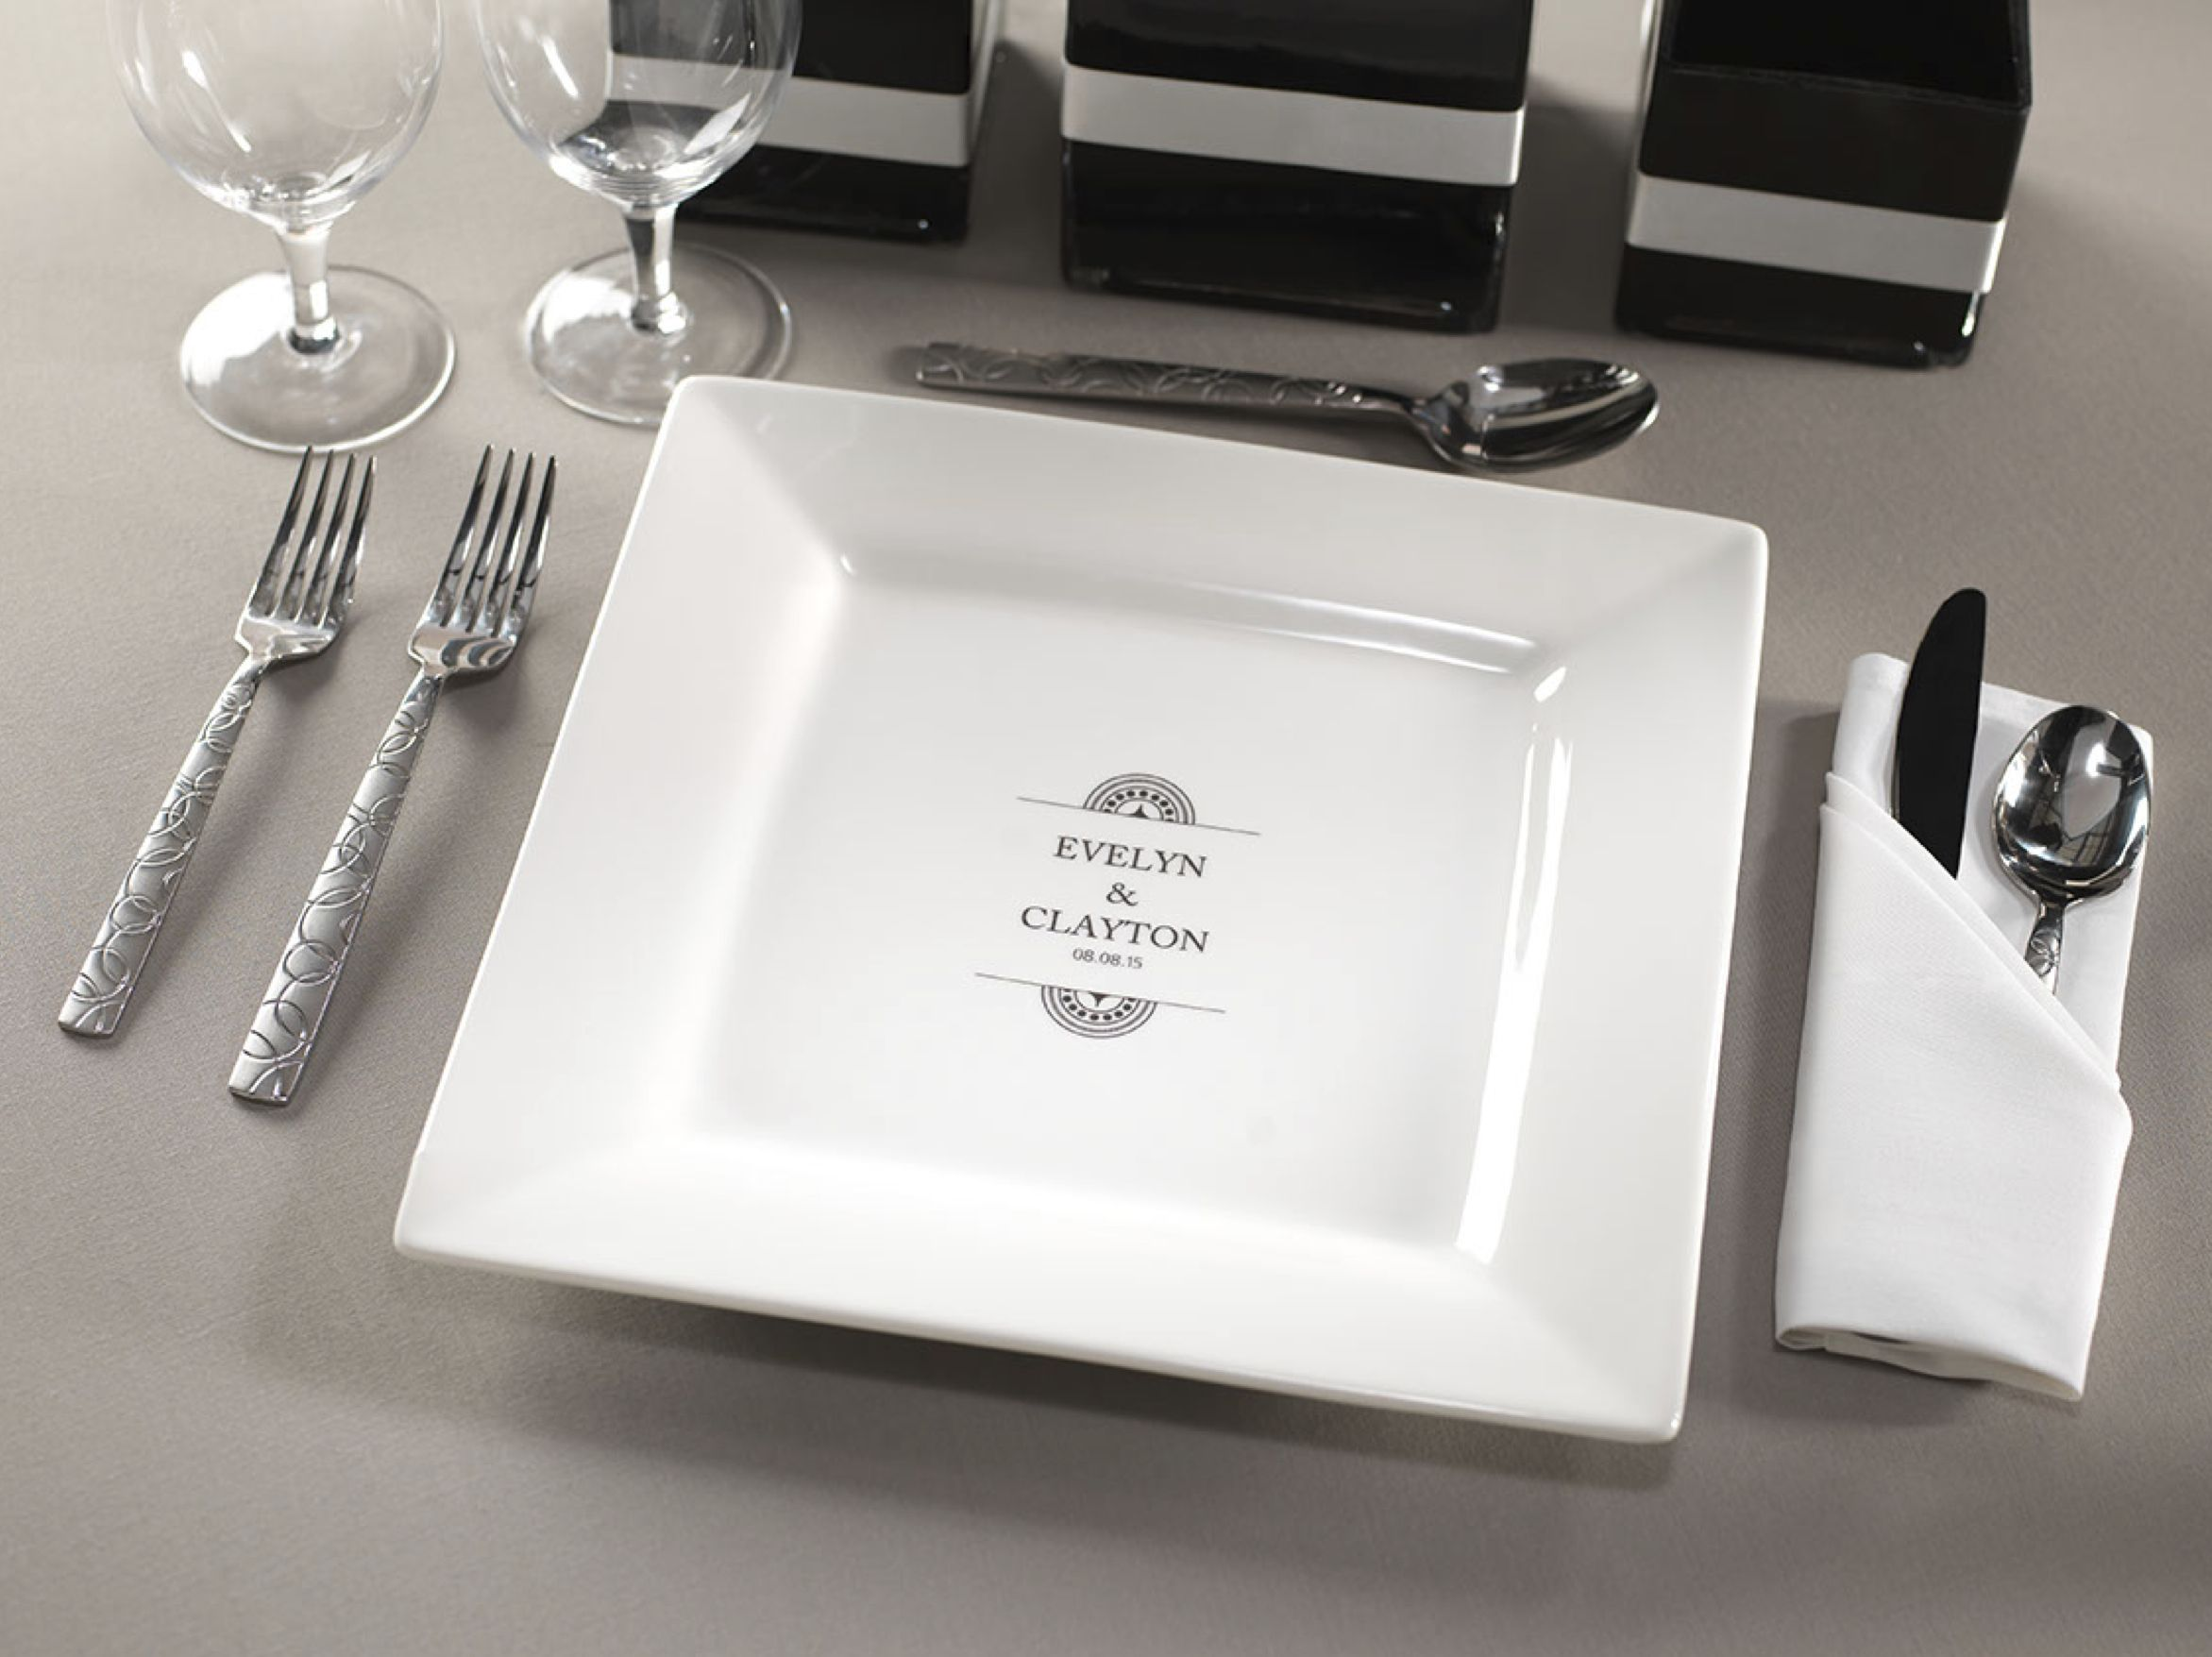 monogrammed plate for wedding reception from checkerboard